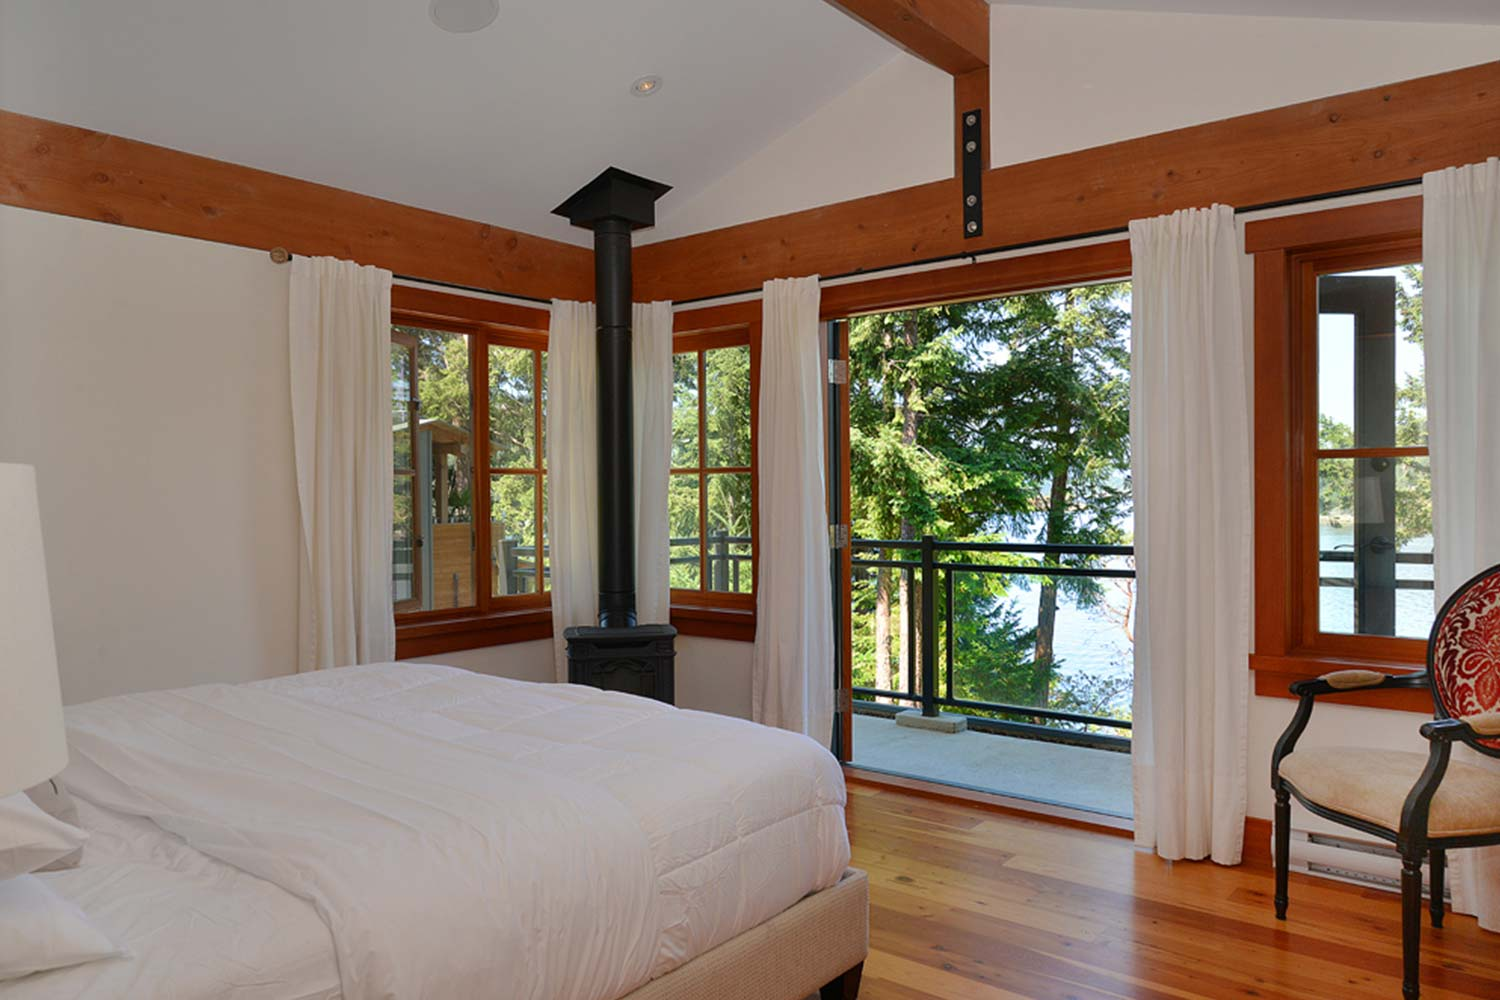 The upstairs master bedroom of this luxury holiday house features a private balcony with ocean views & a walk-in closet.